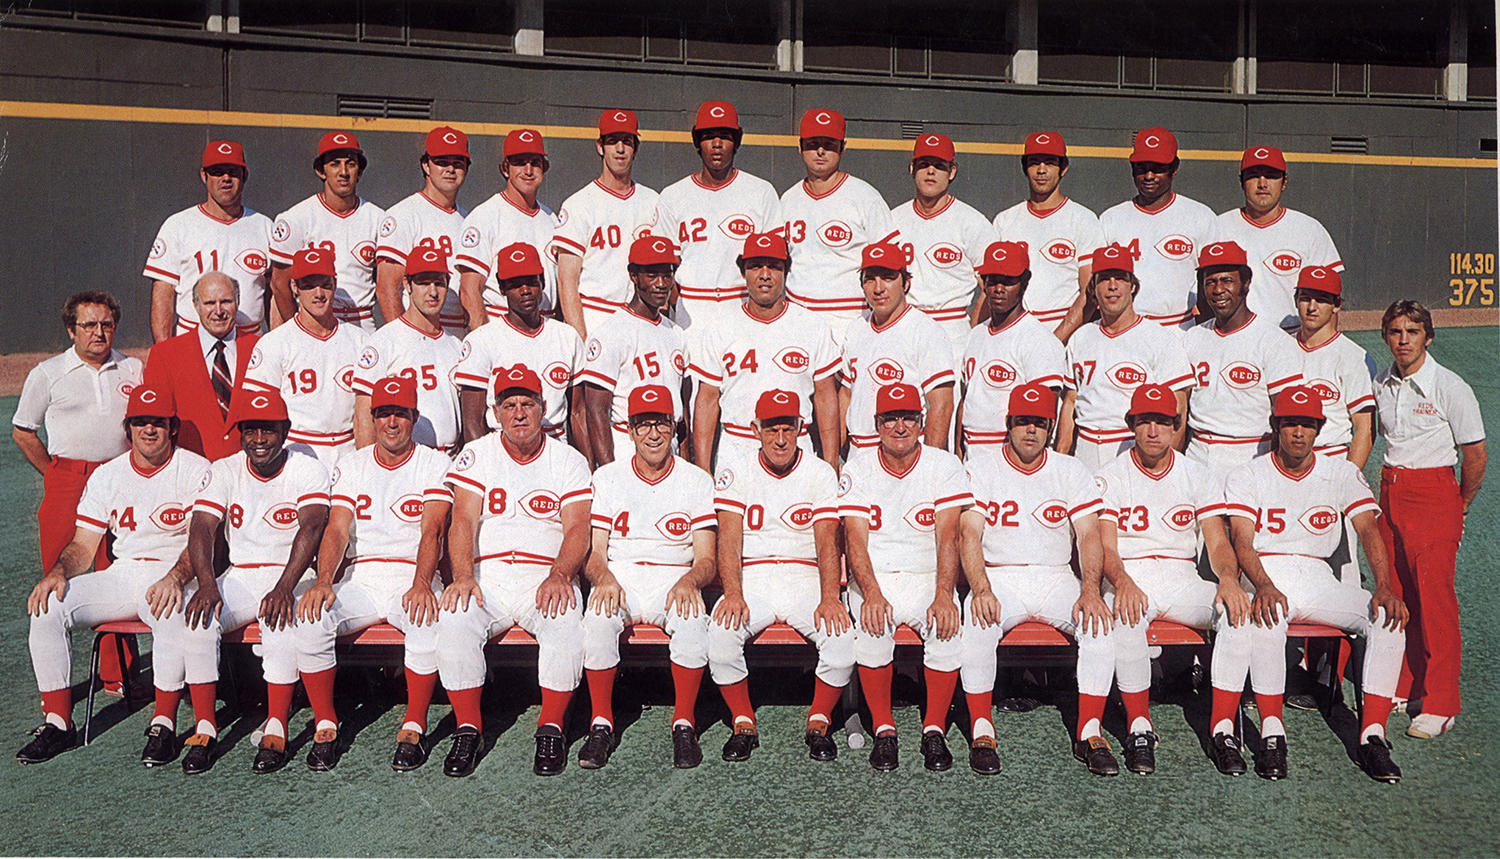 As a member of the 1975 Cincinnati Reds, César Gerónimo earned his second World Series ring with the team. He is pictured above in the top row, third from the right. (National Baseball Hall of Fame and Museum)